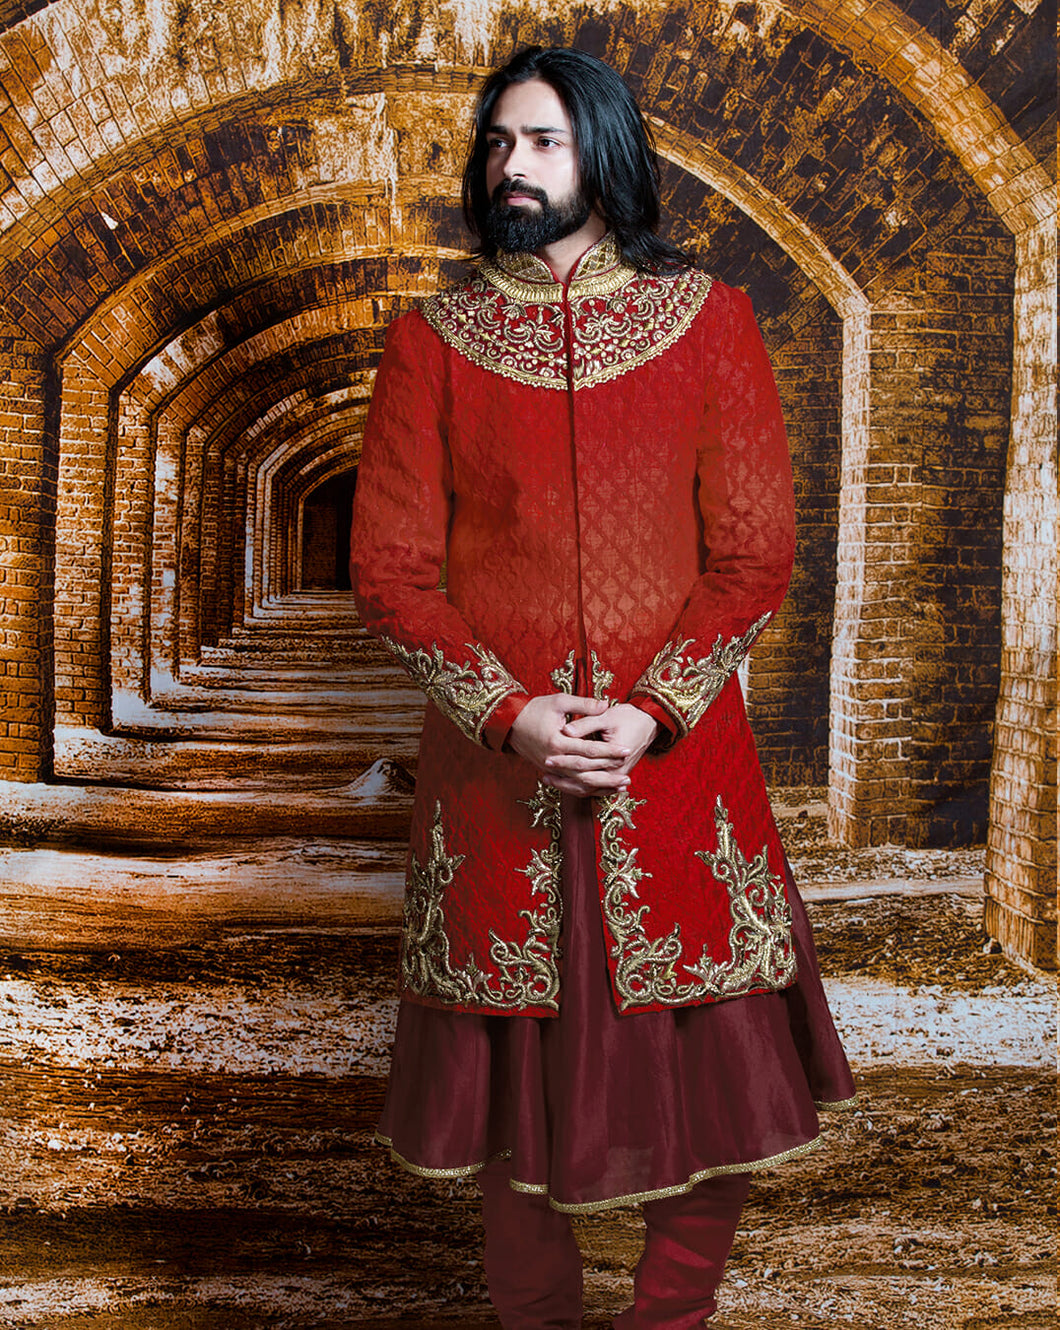 The Red Maharaja Sherwani